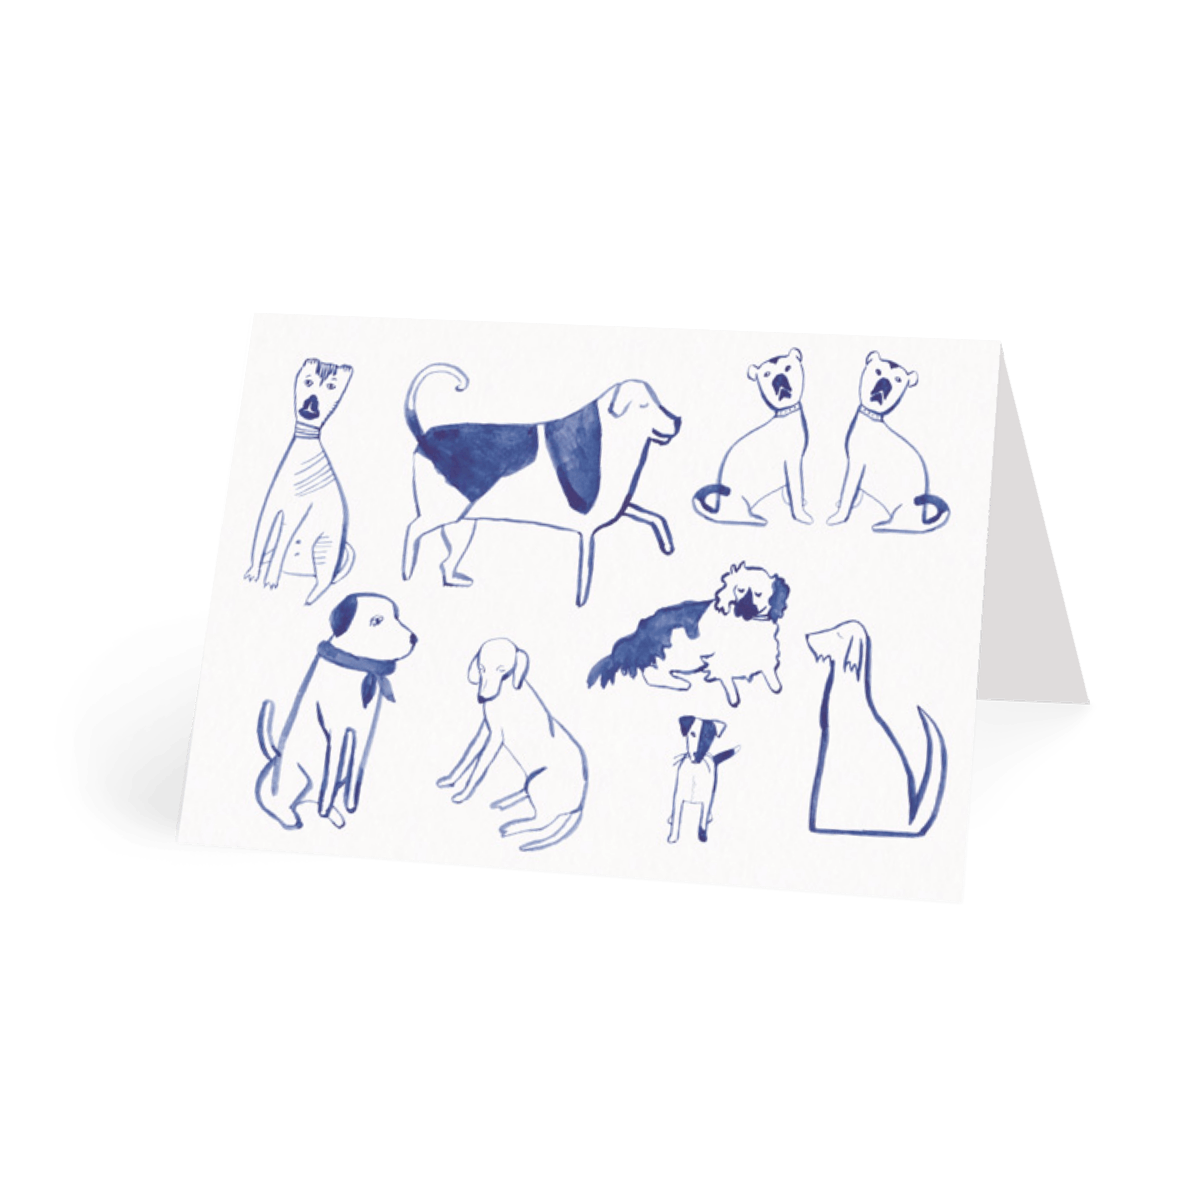 Https%3a%2f%2fwww.papier.com%2fproduct image%2f4054%2f14%2fposh dogs 1074 avant 1453911119.png?ixlib=rb 1.1